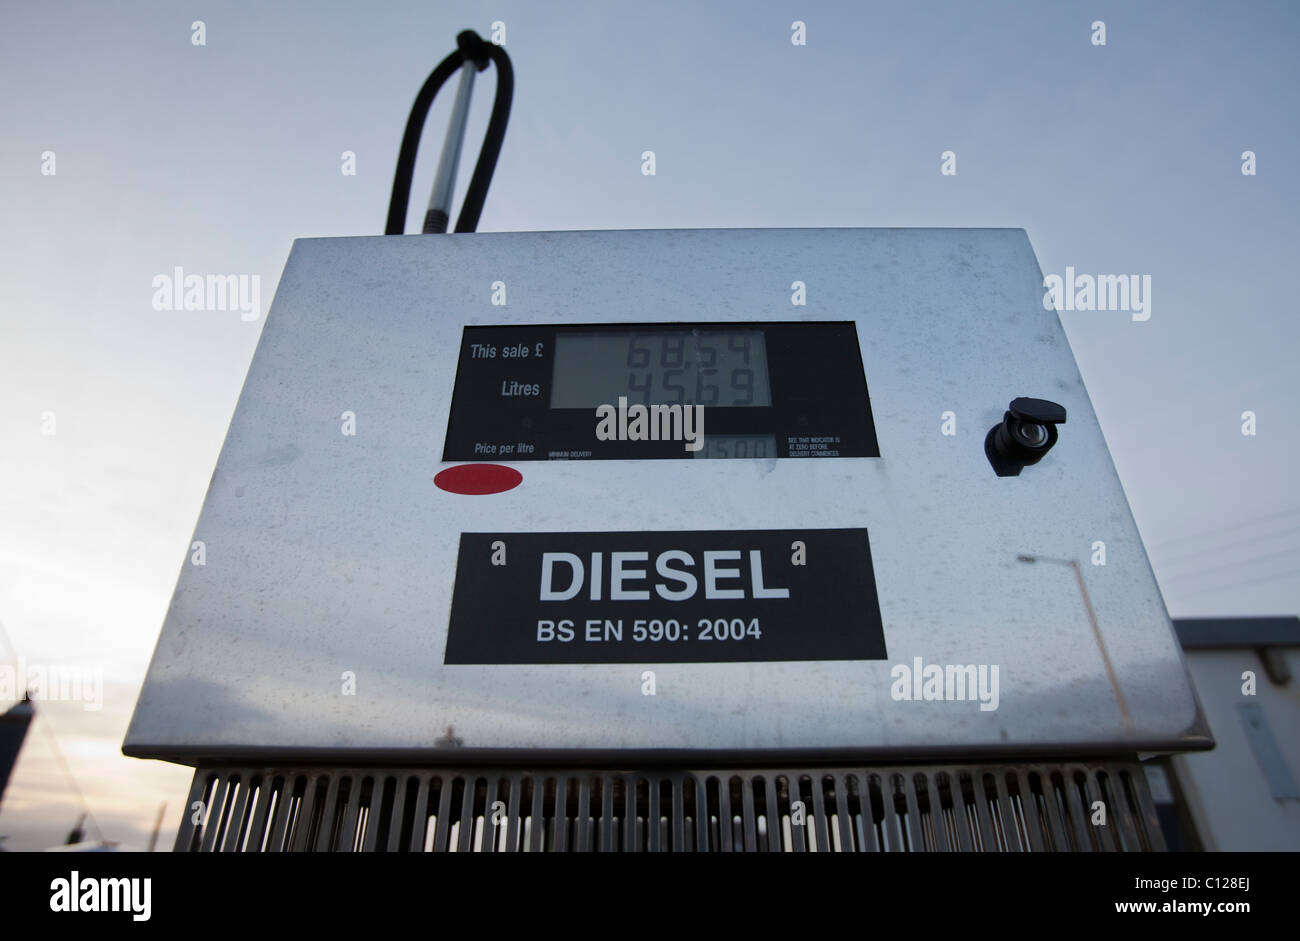 Diesel fuel pump set at £1.50 per litre on the island of Sanday, one of the Orkney isles - Stock Image